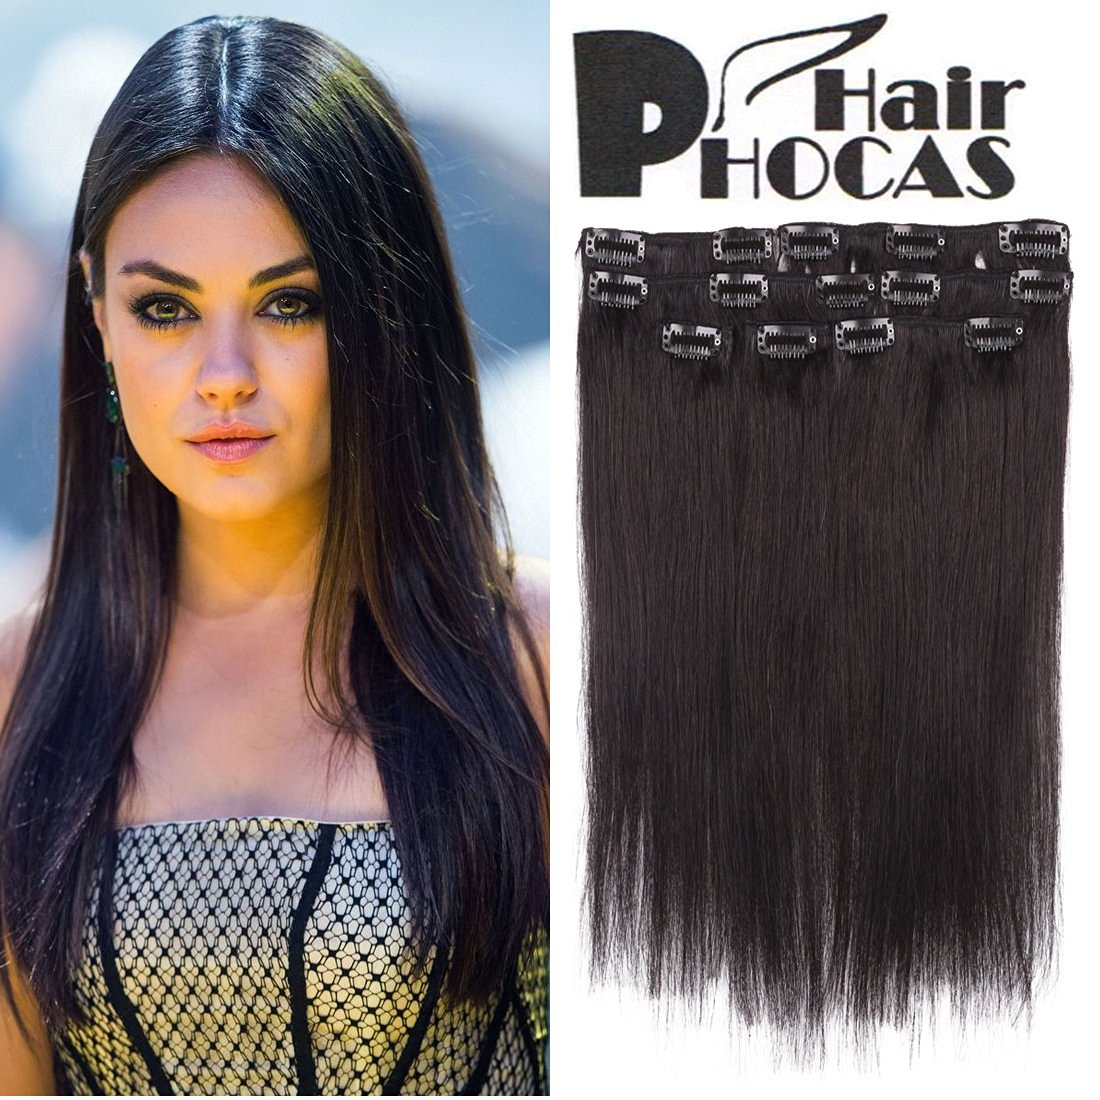 Buy Hairphocas 14 Inch 1b Natural Black Full Head Clip In Remy